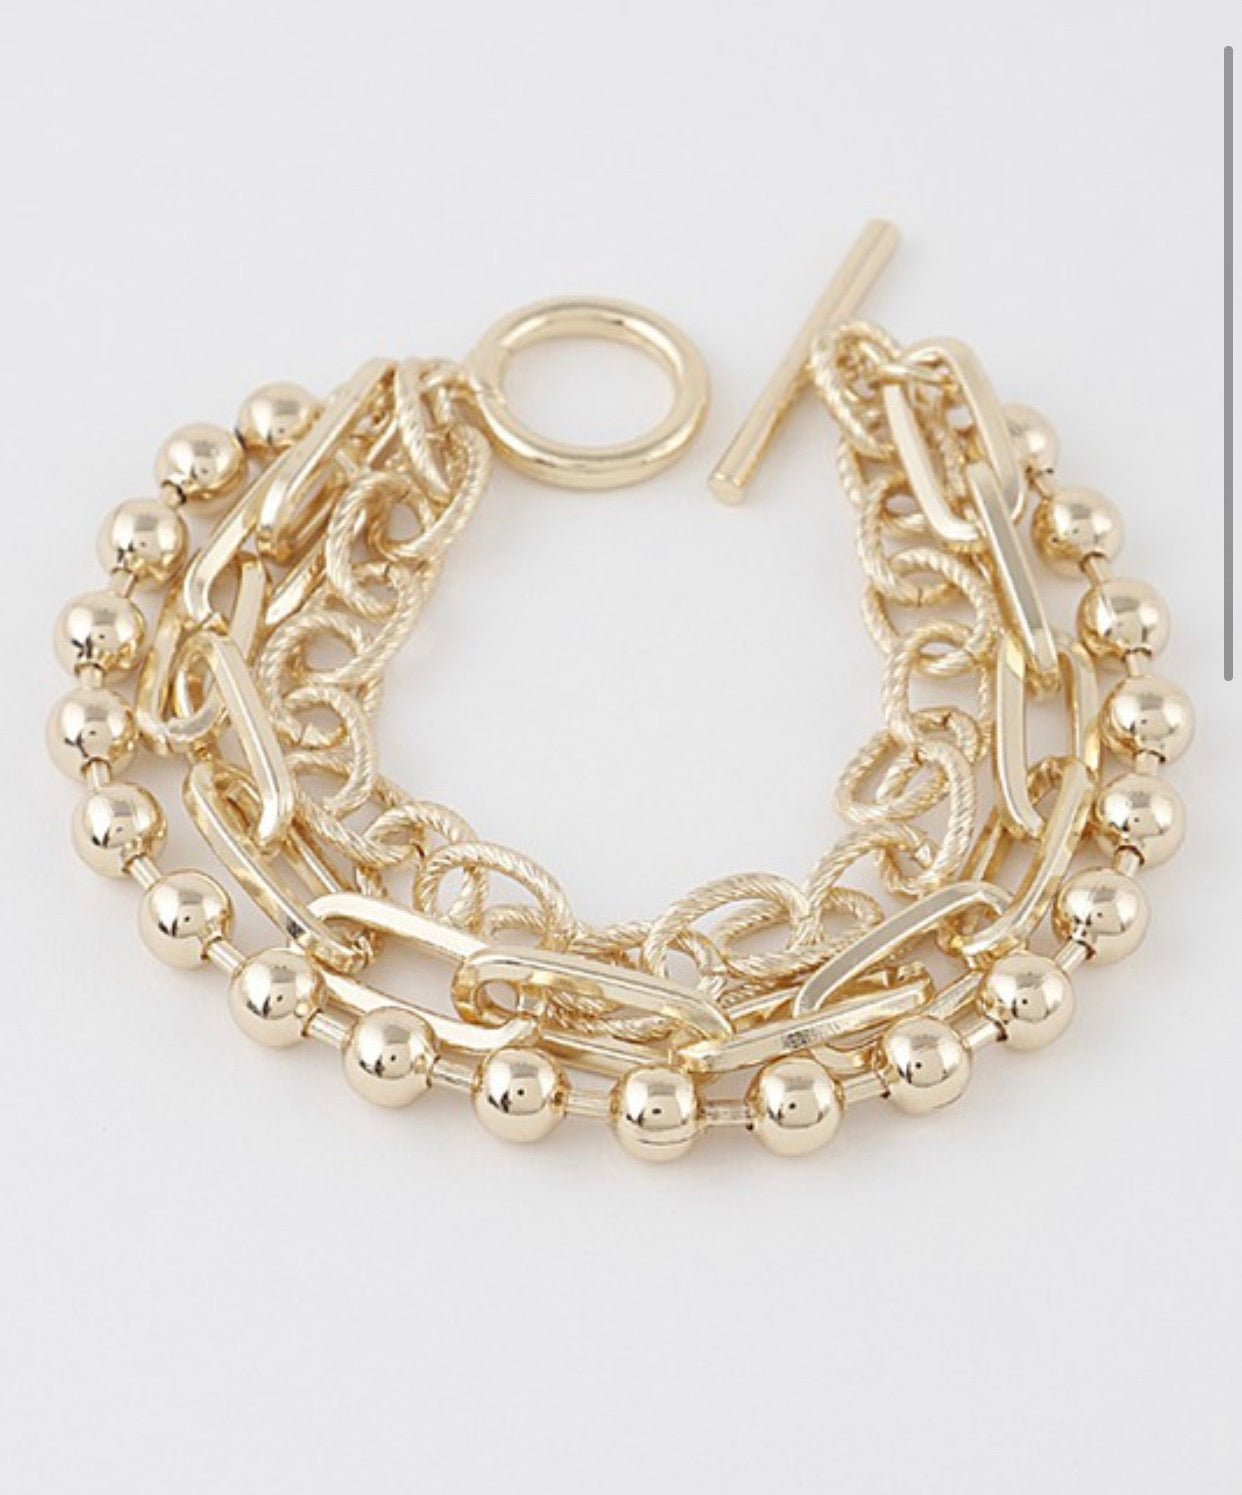 Gold Multi Chain Toggle Bracelet